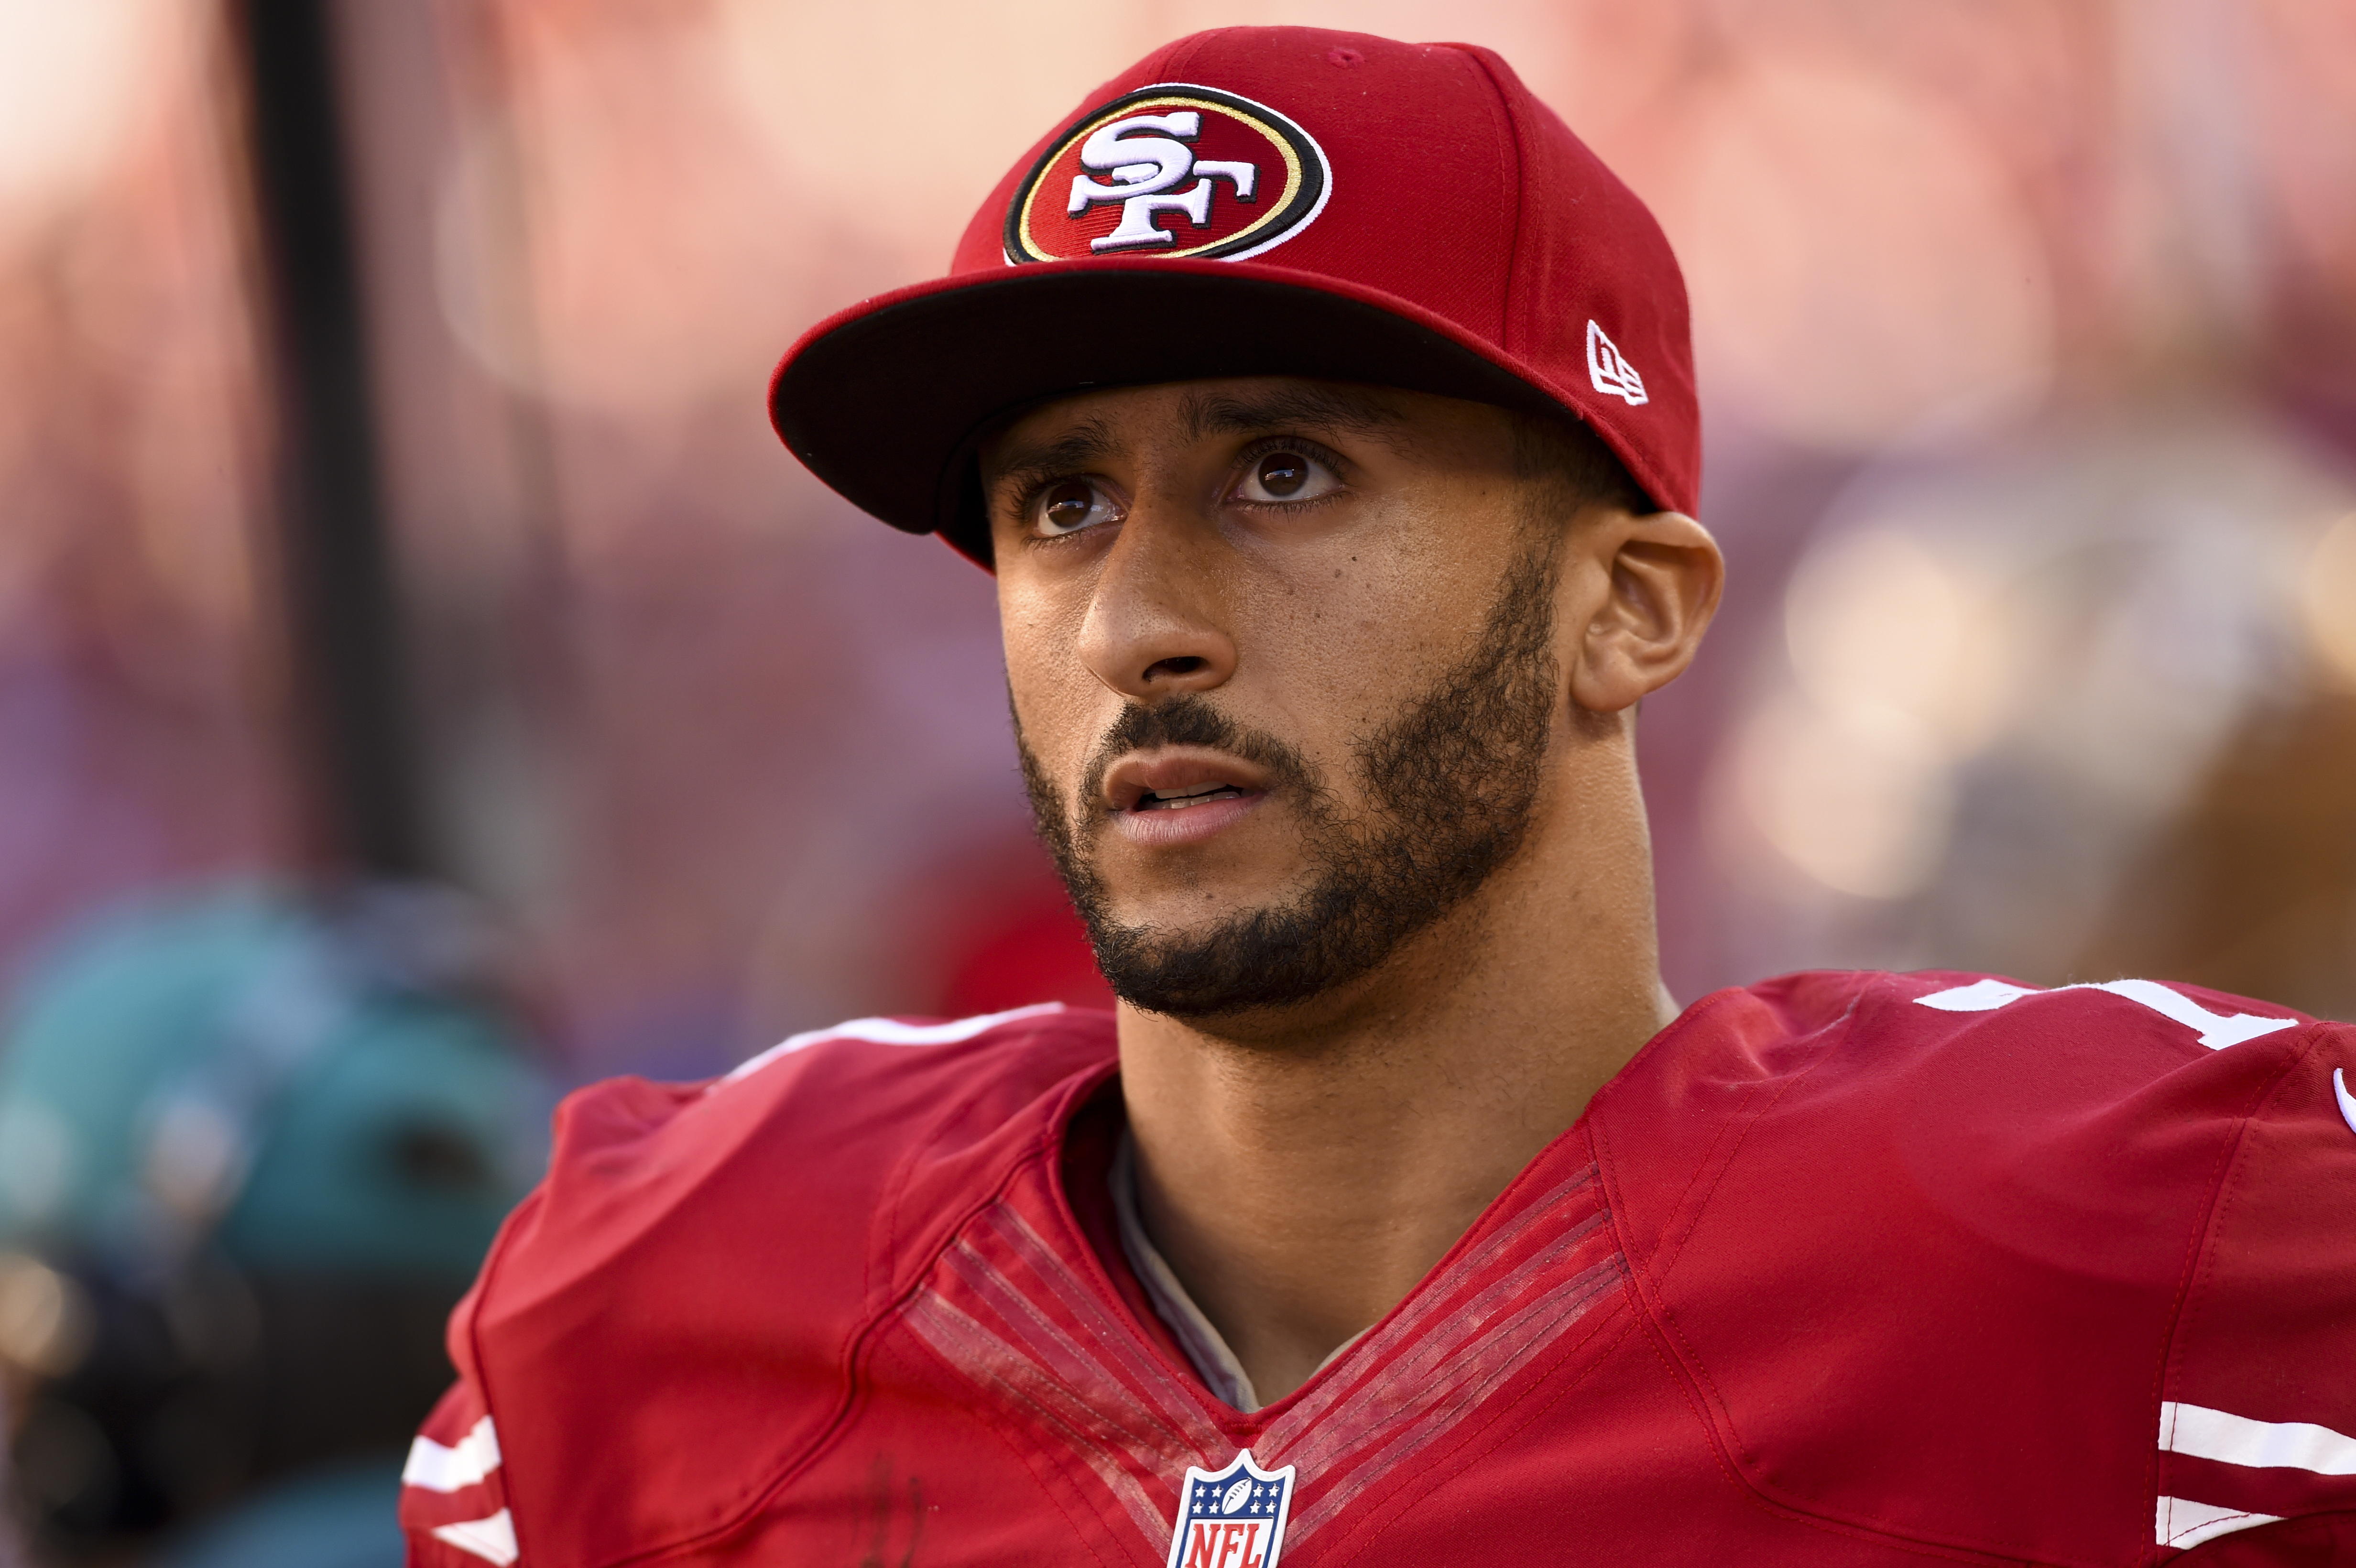 Report: Colin Kaepernick Could Be Released by San Francisco 49ers